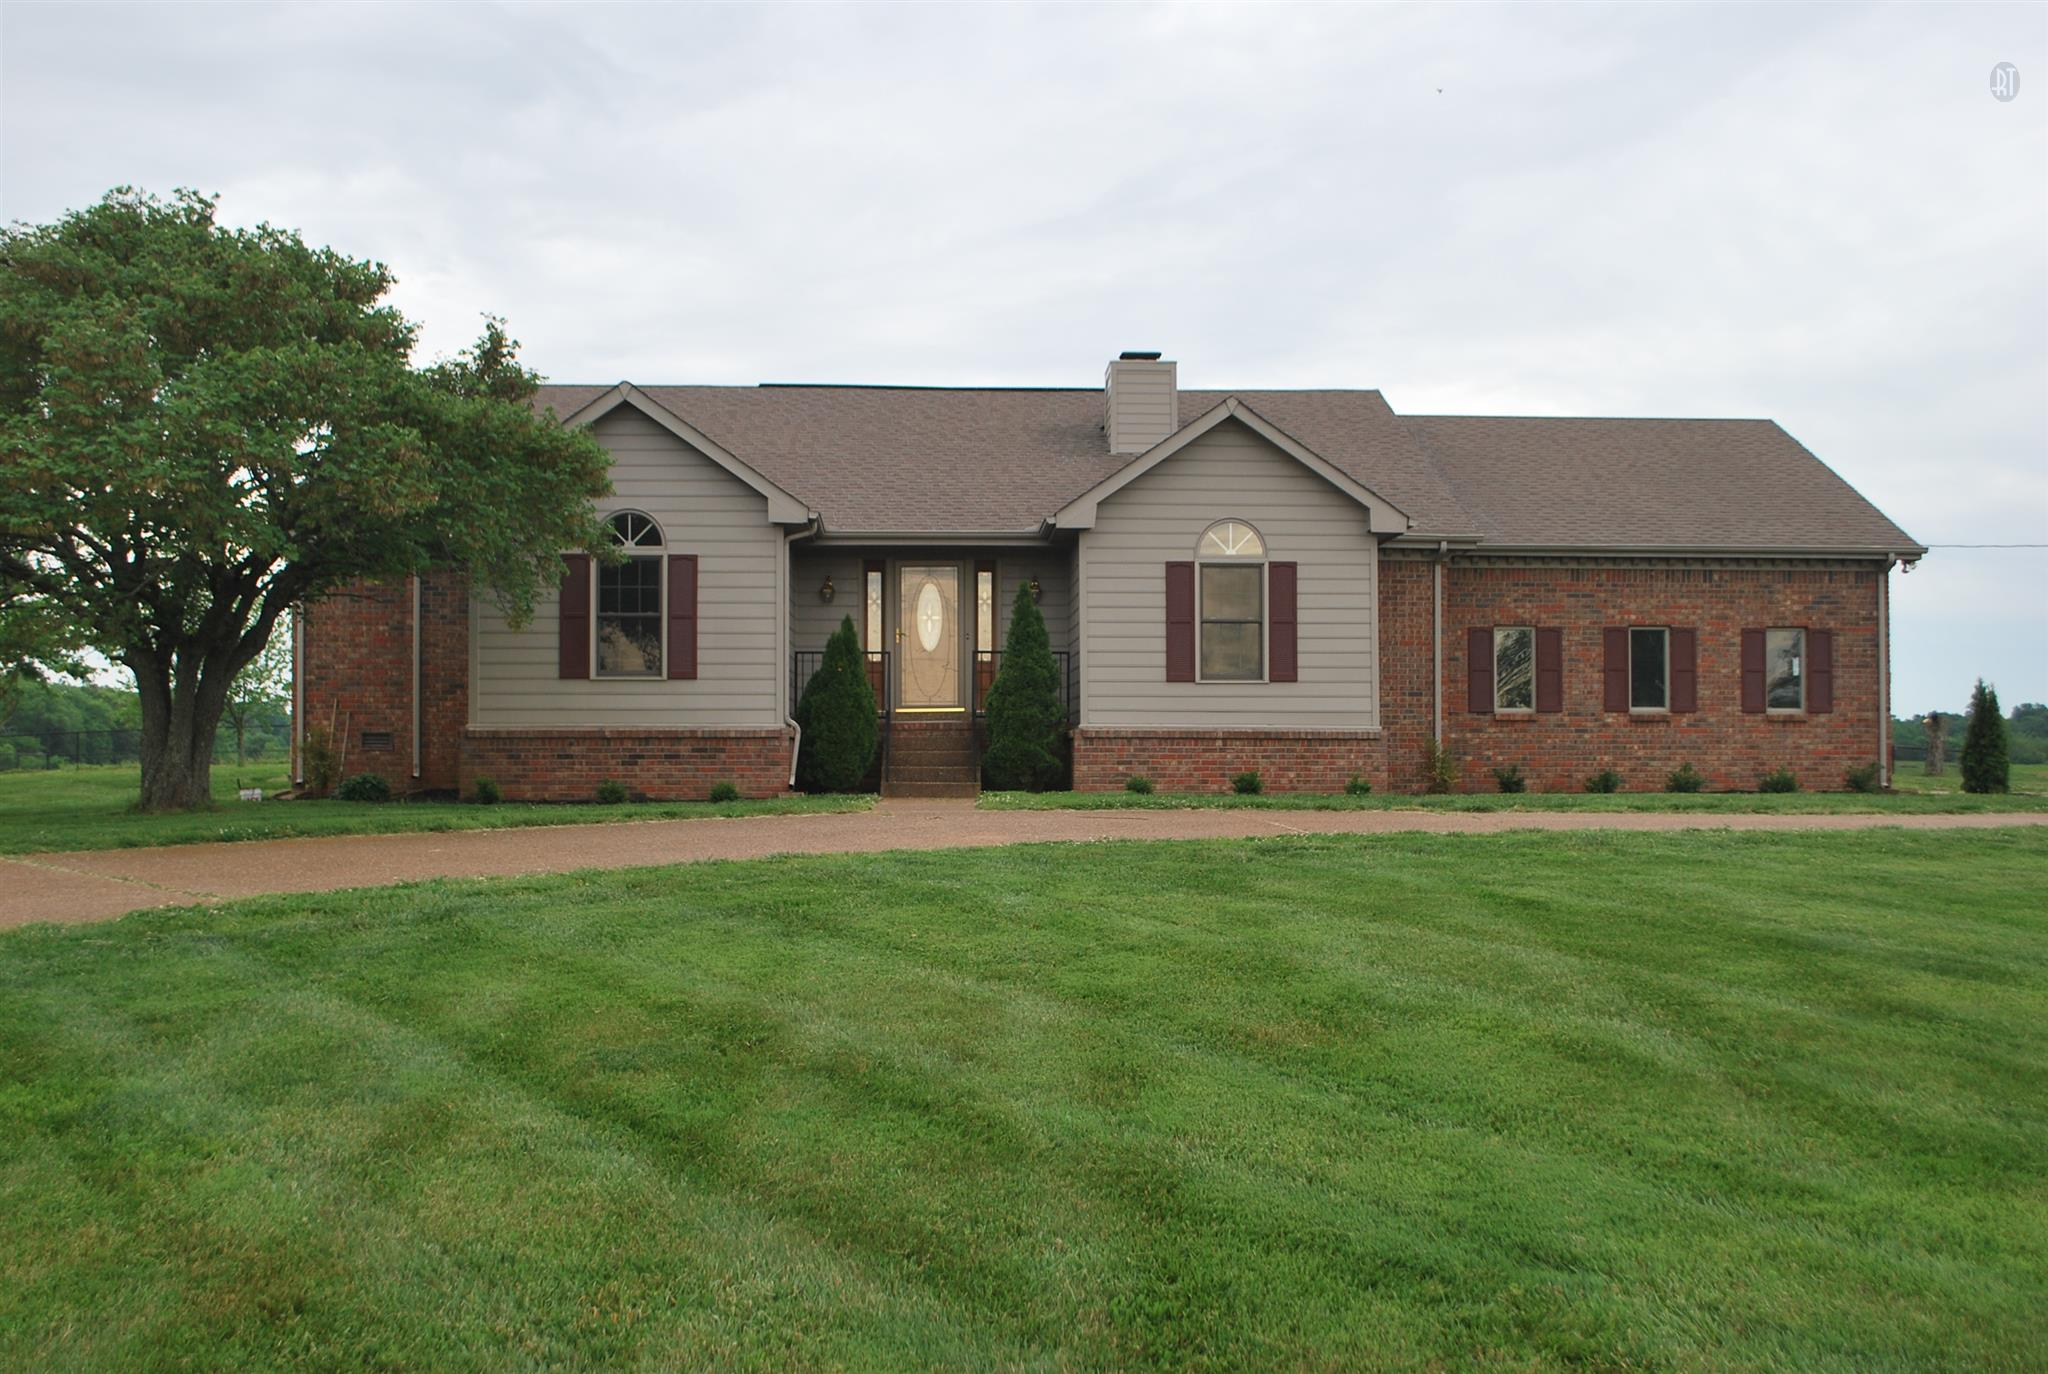 4969 E Robertson Rd, Cross Plains, TN 37049